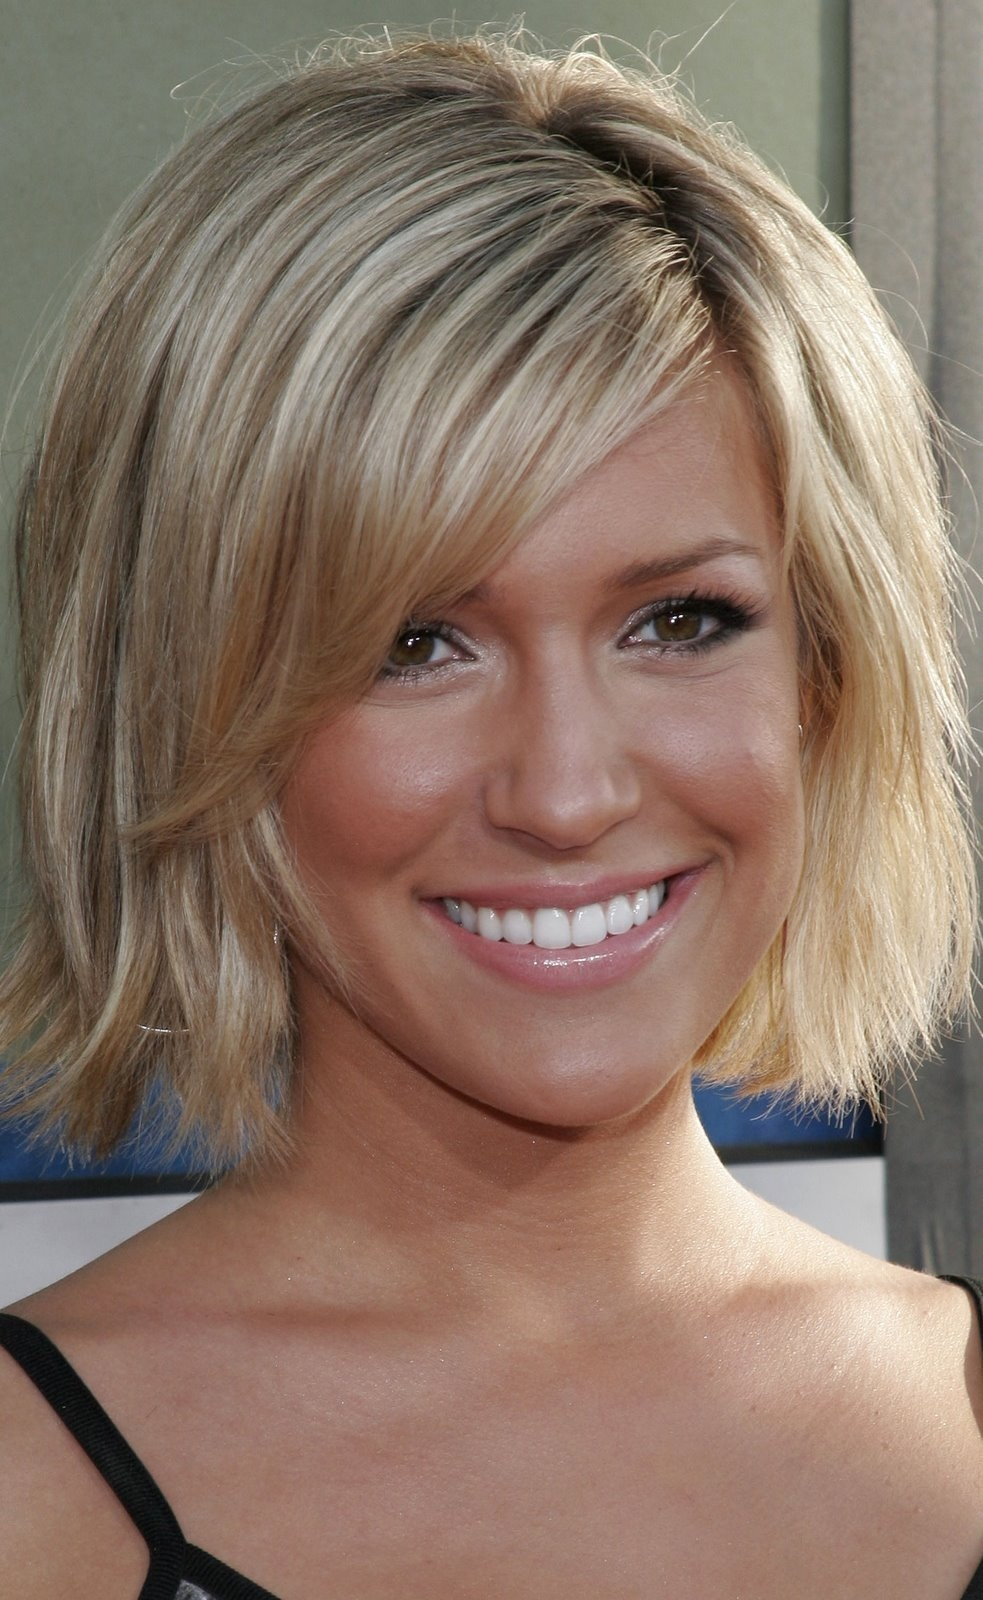 Outstanding 15 Fun Ideas That Will Make Love The Short Blonde Hairstyles With Short Hairstyles For Black Women Fulllsitofus